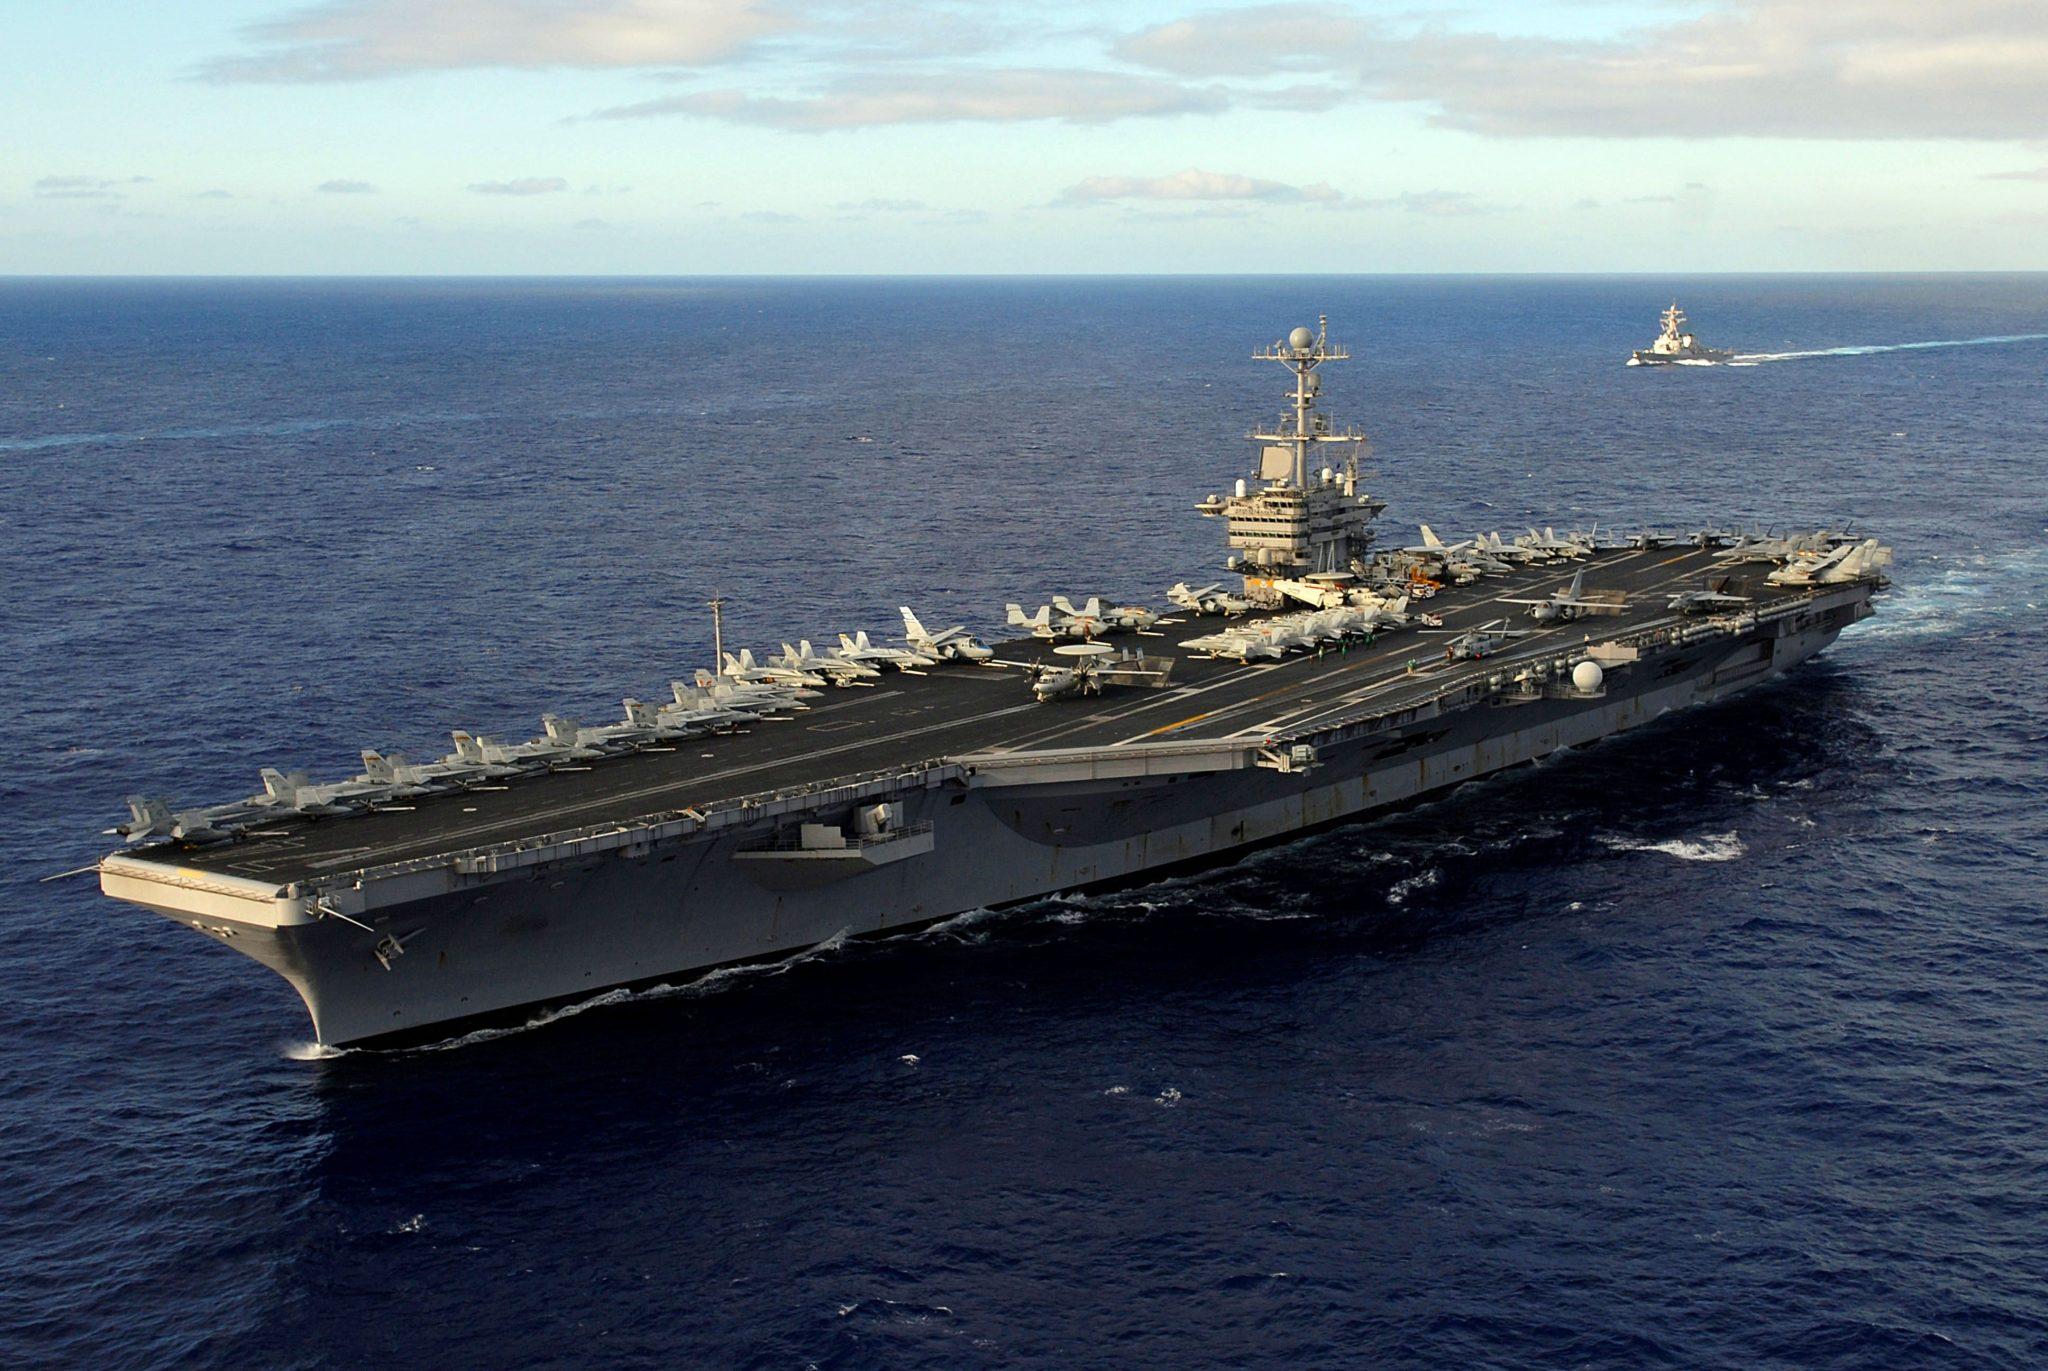 The John C. Stennis Carrier. Photo via the U.S. Navy.